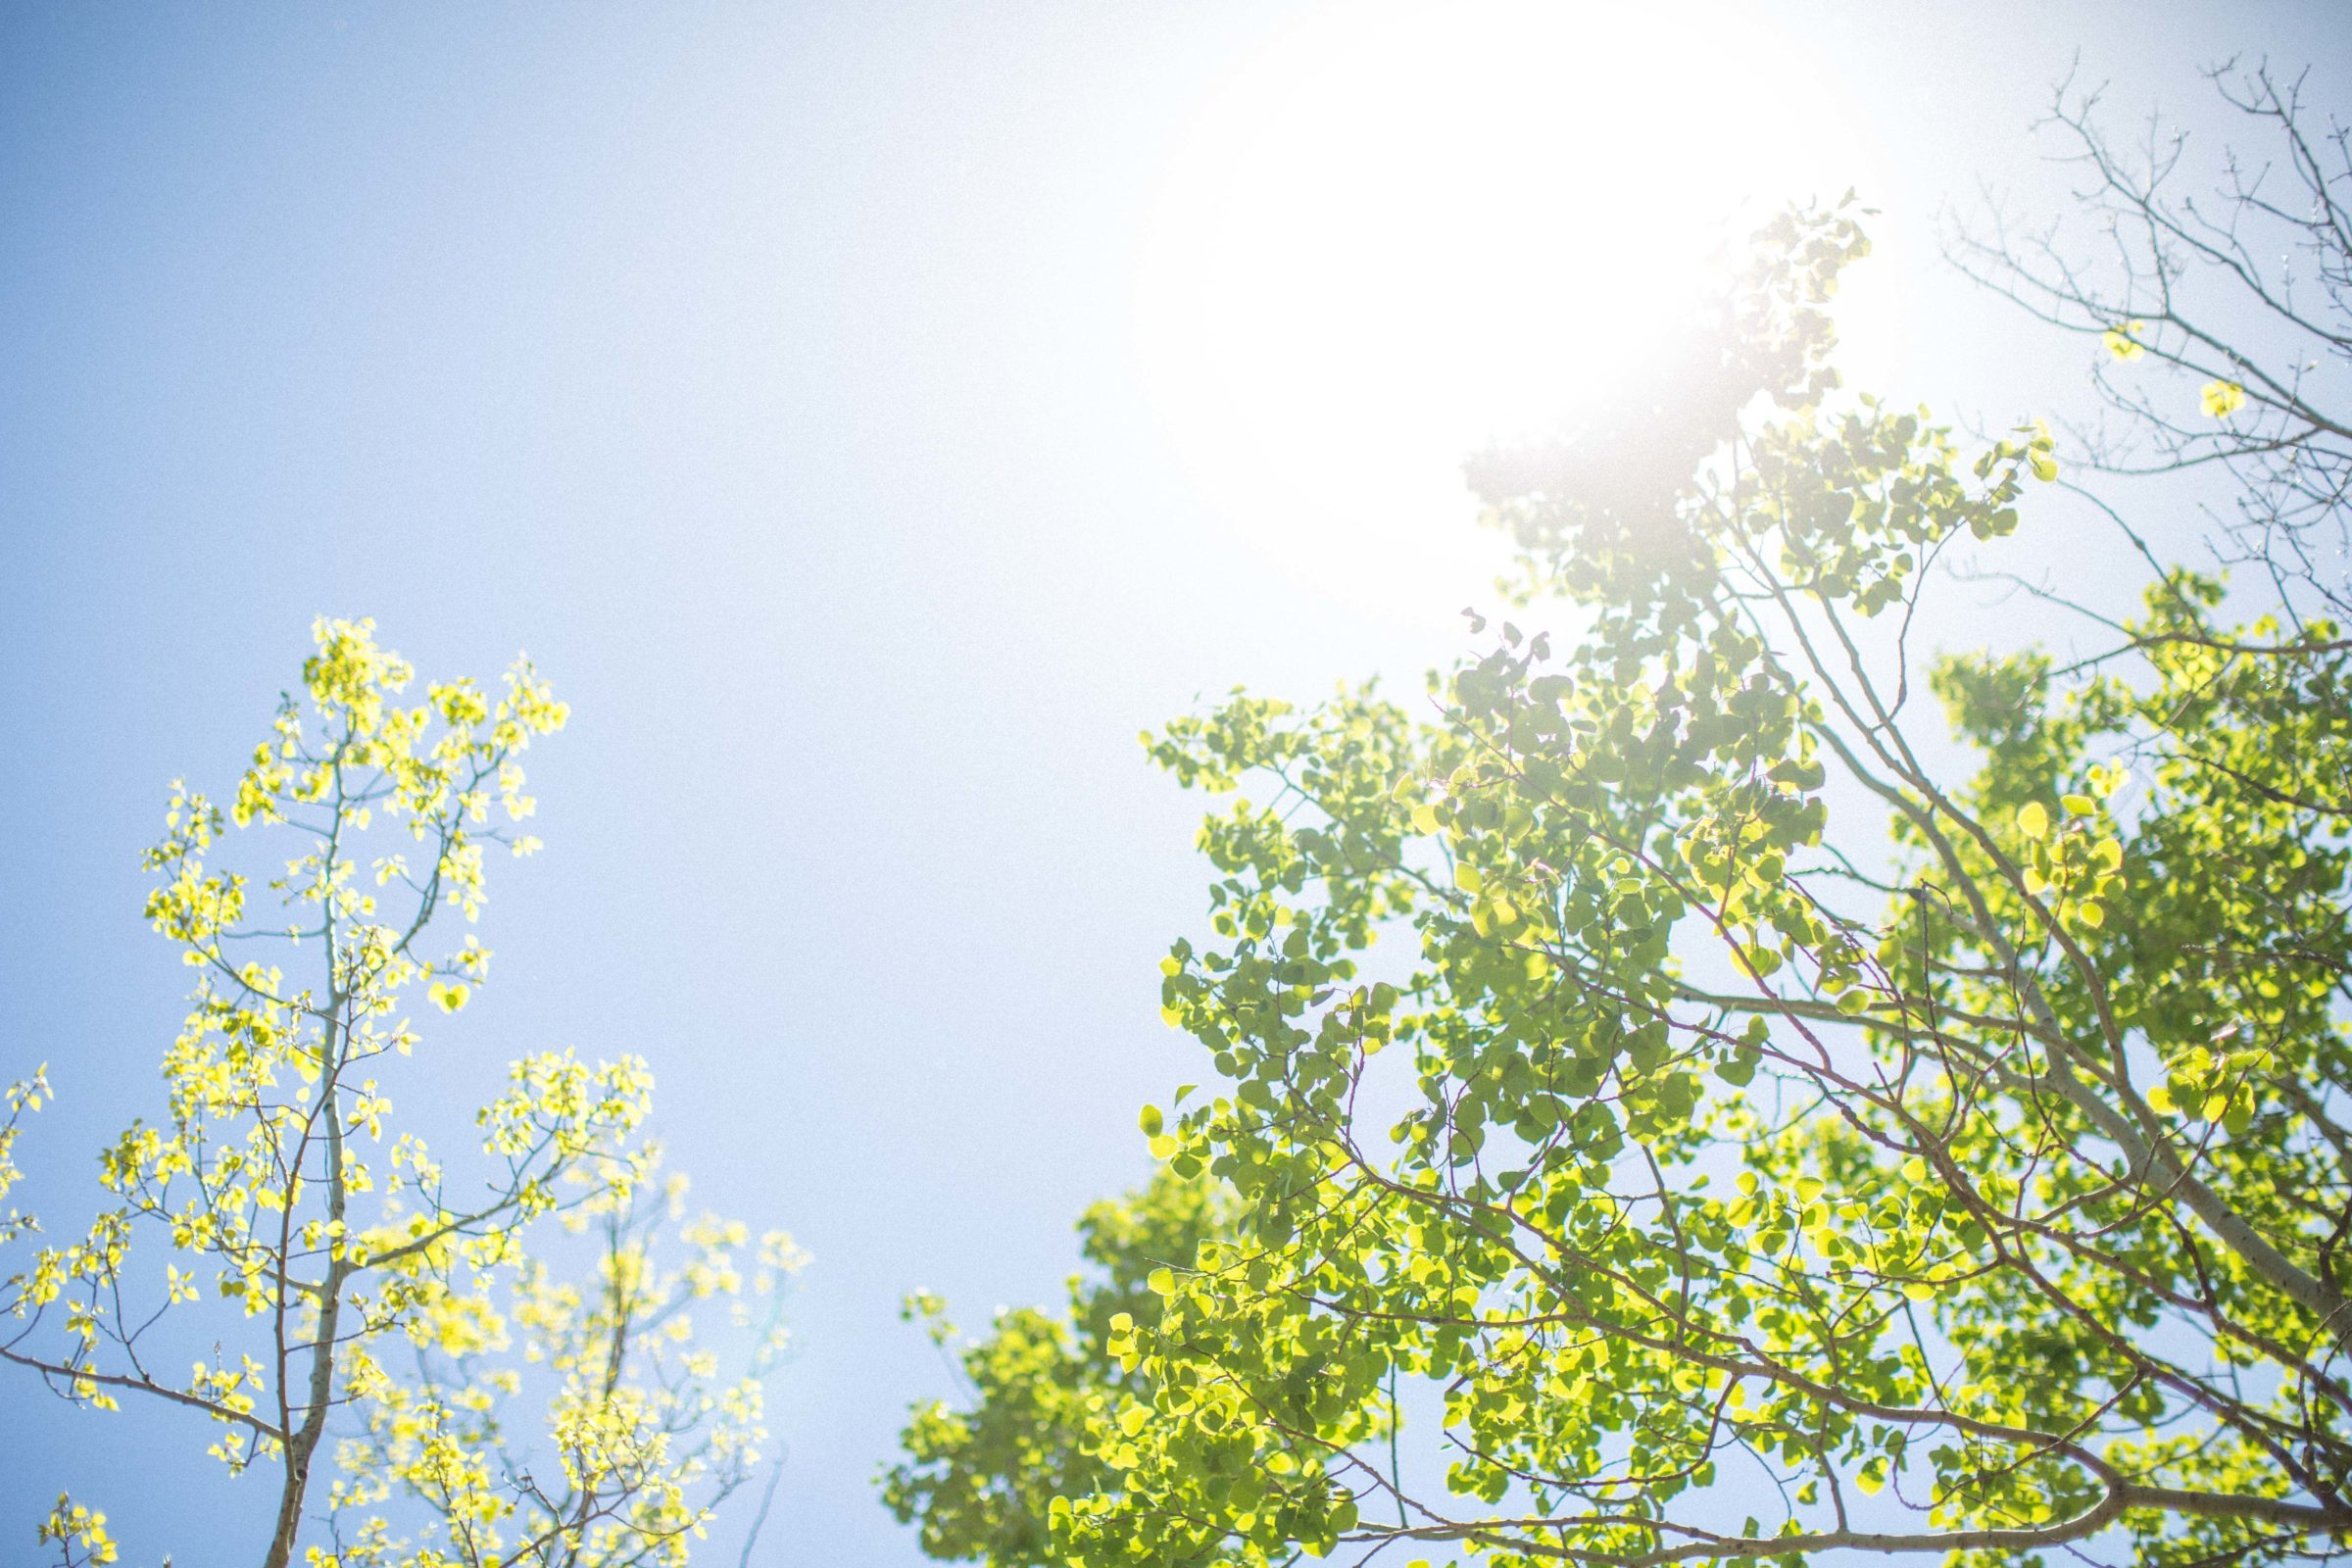 Clear blue sky and sun shine through green leaves